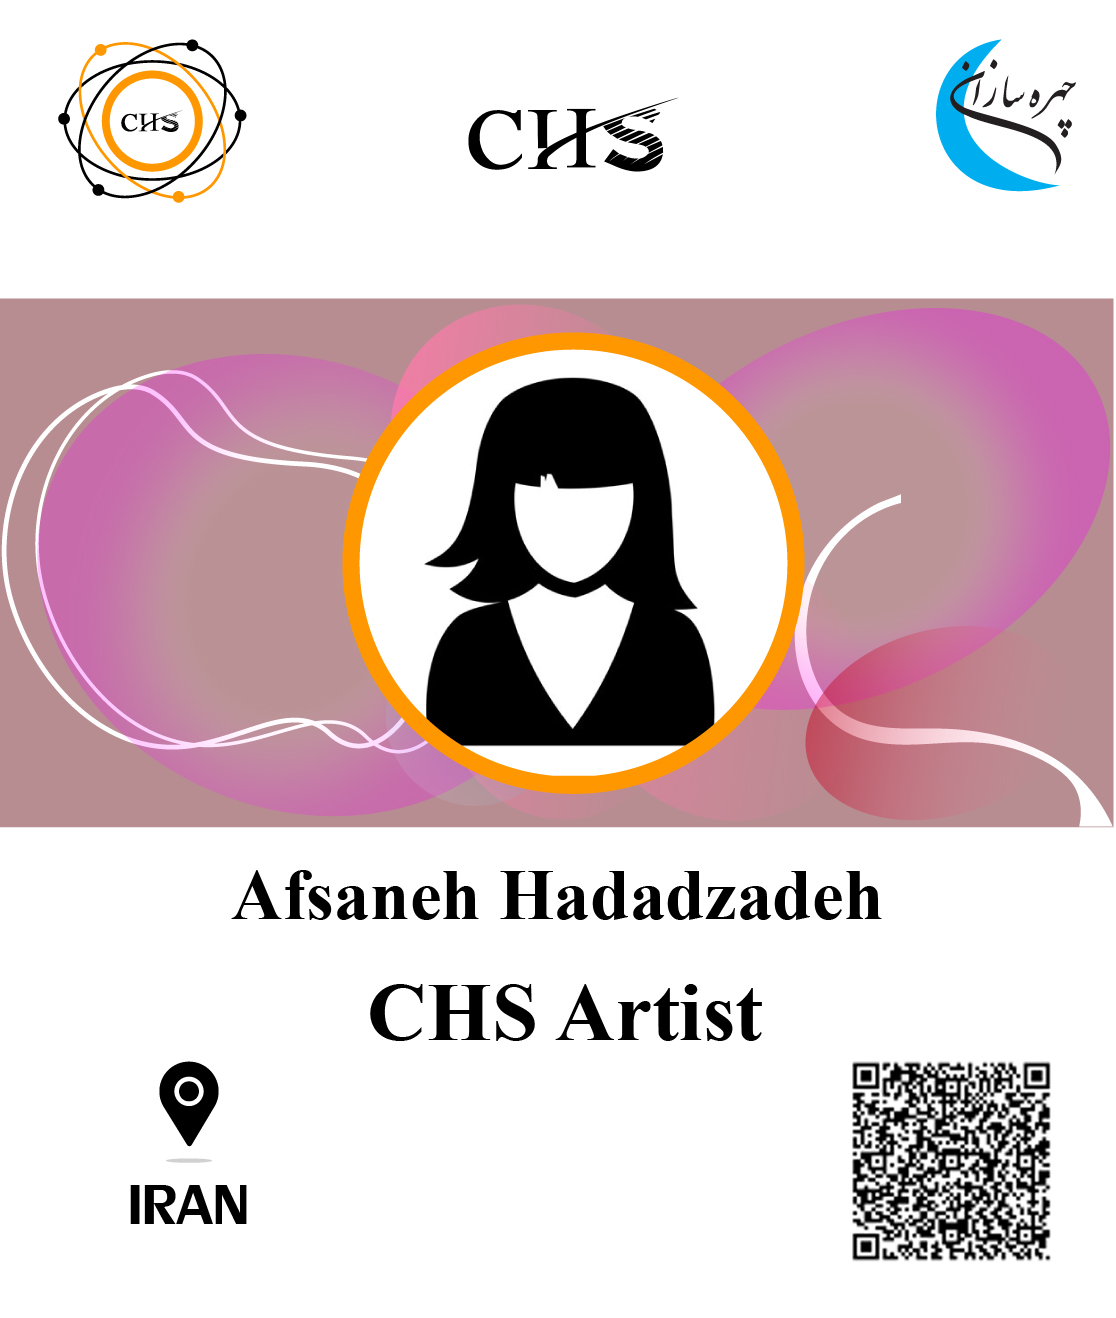 Afsaneh Hadadzadeh, Coaching and teacher training certificate, Coaching and teacher training, Coaching and teacher training certificate, Coaching and teacher training, Coaching and teacher training Afsaneh Hadadzadeh, Coaching and teacher training certificate Afsaneh Hadadzadeh